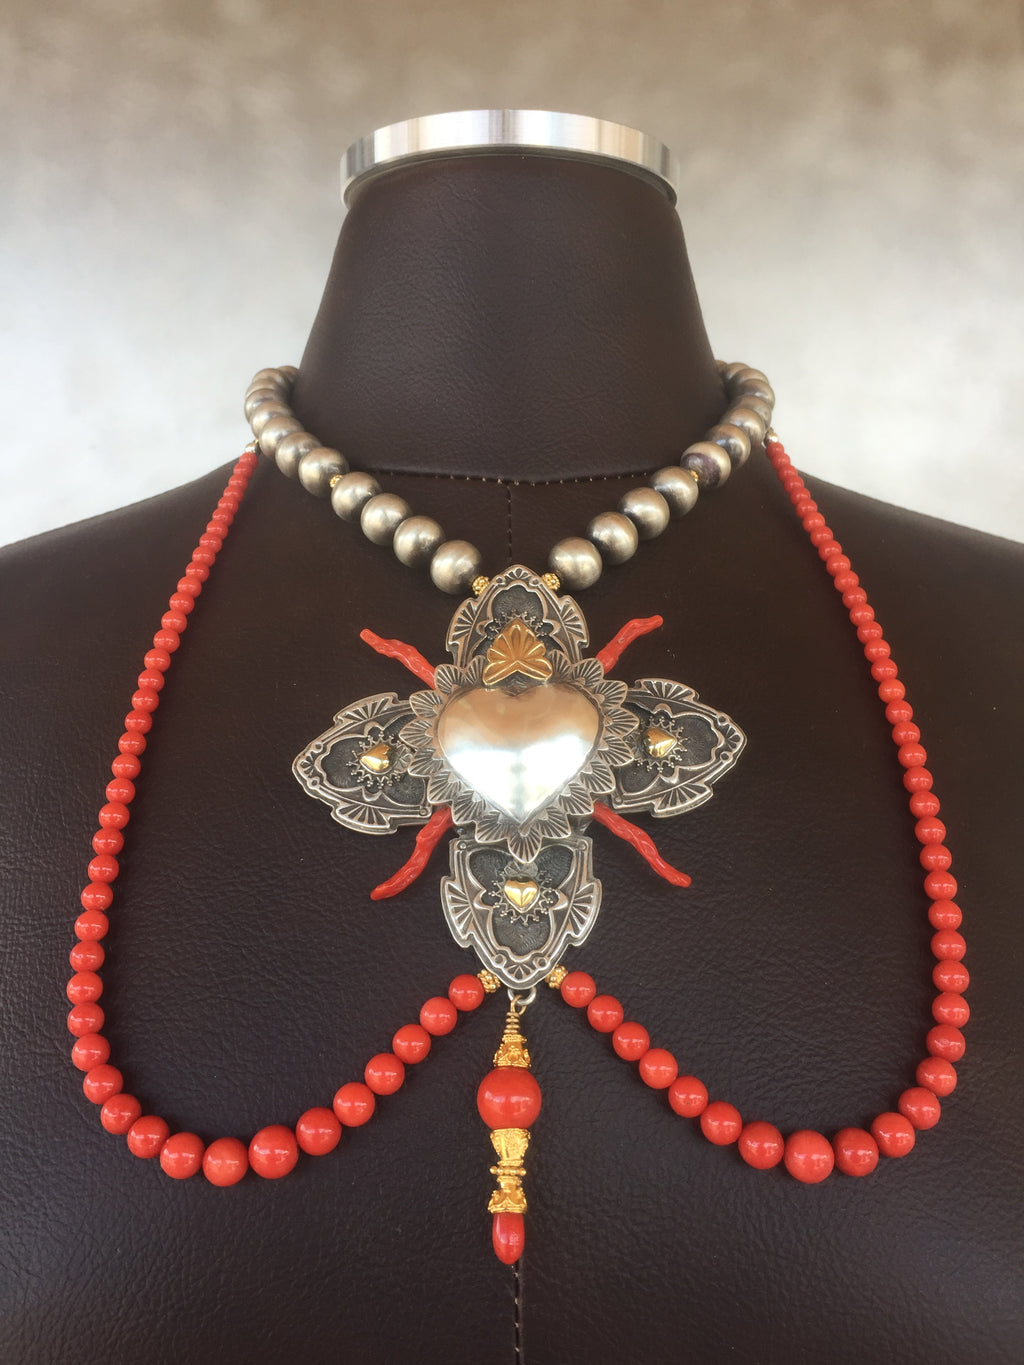 Empress Isabel Necklace by Award Winning Santa Fe Spanish Market Artist Gregory Segura for the Albuquerque Museum exhibition Jewelry from New Mexico June 2018